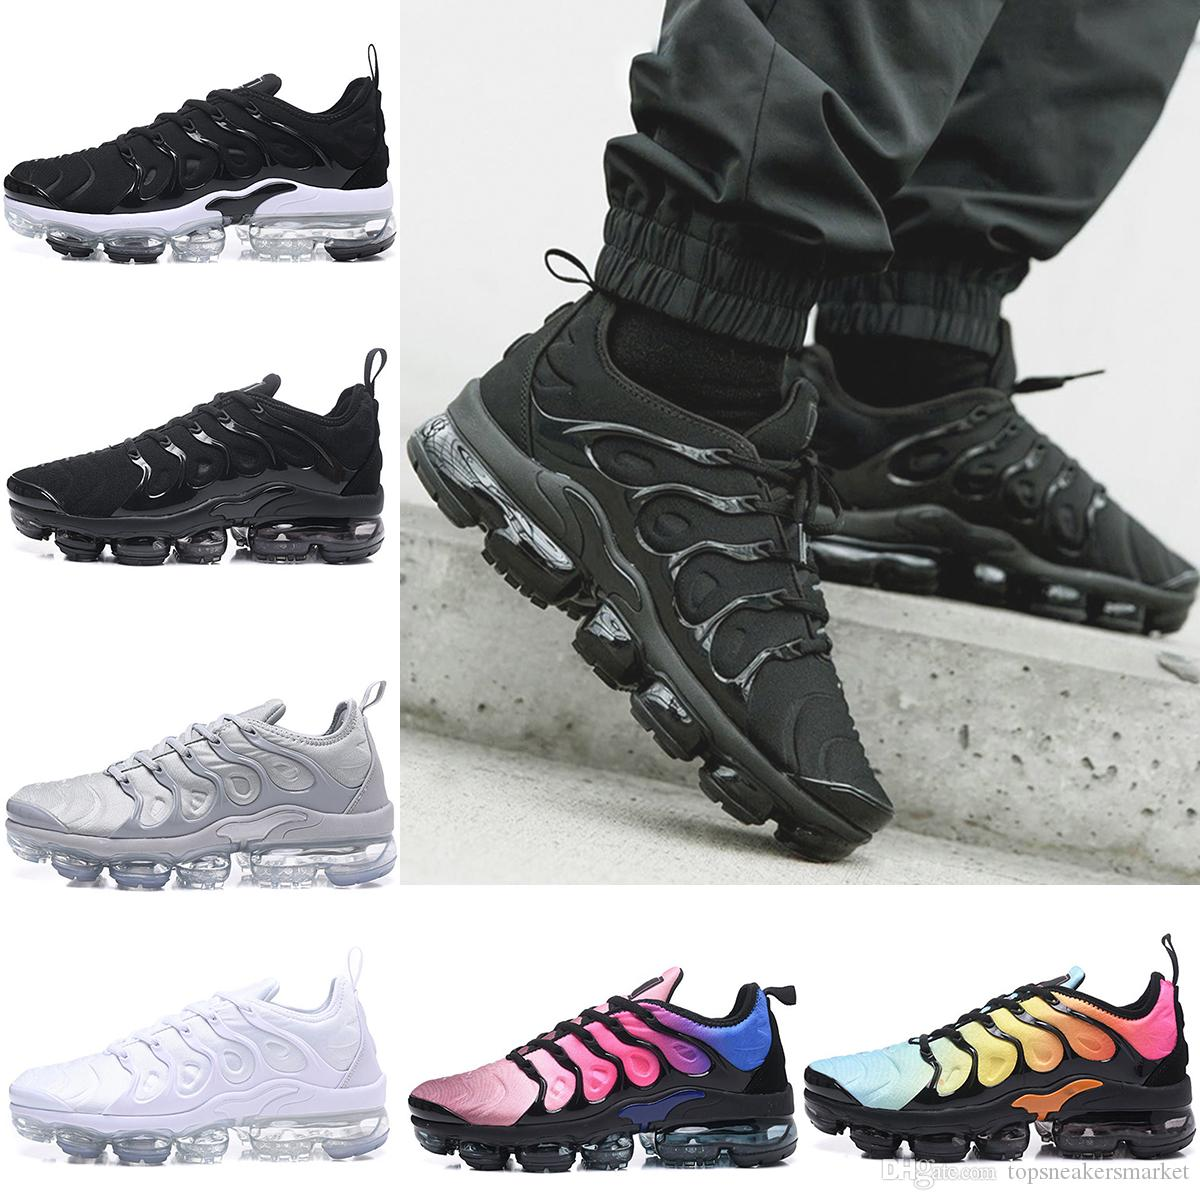 cheap sale with paypal 2018 NEW Mens Vapormax TN Plus Casual Shoes For Men Women Triples White Black Silver Oreo Designers Walking Jogging shoes US 7-12 fashion Style online osuFxkYW